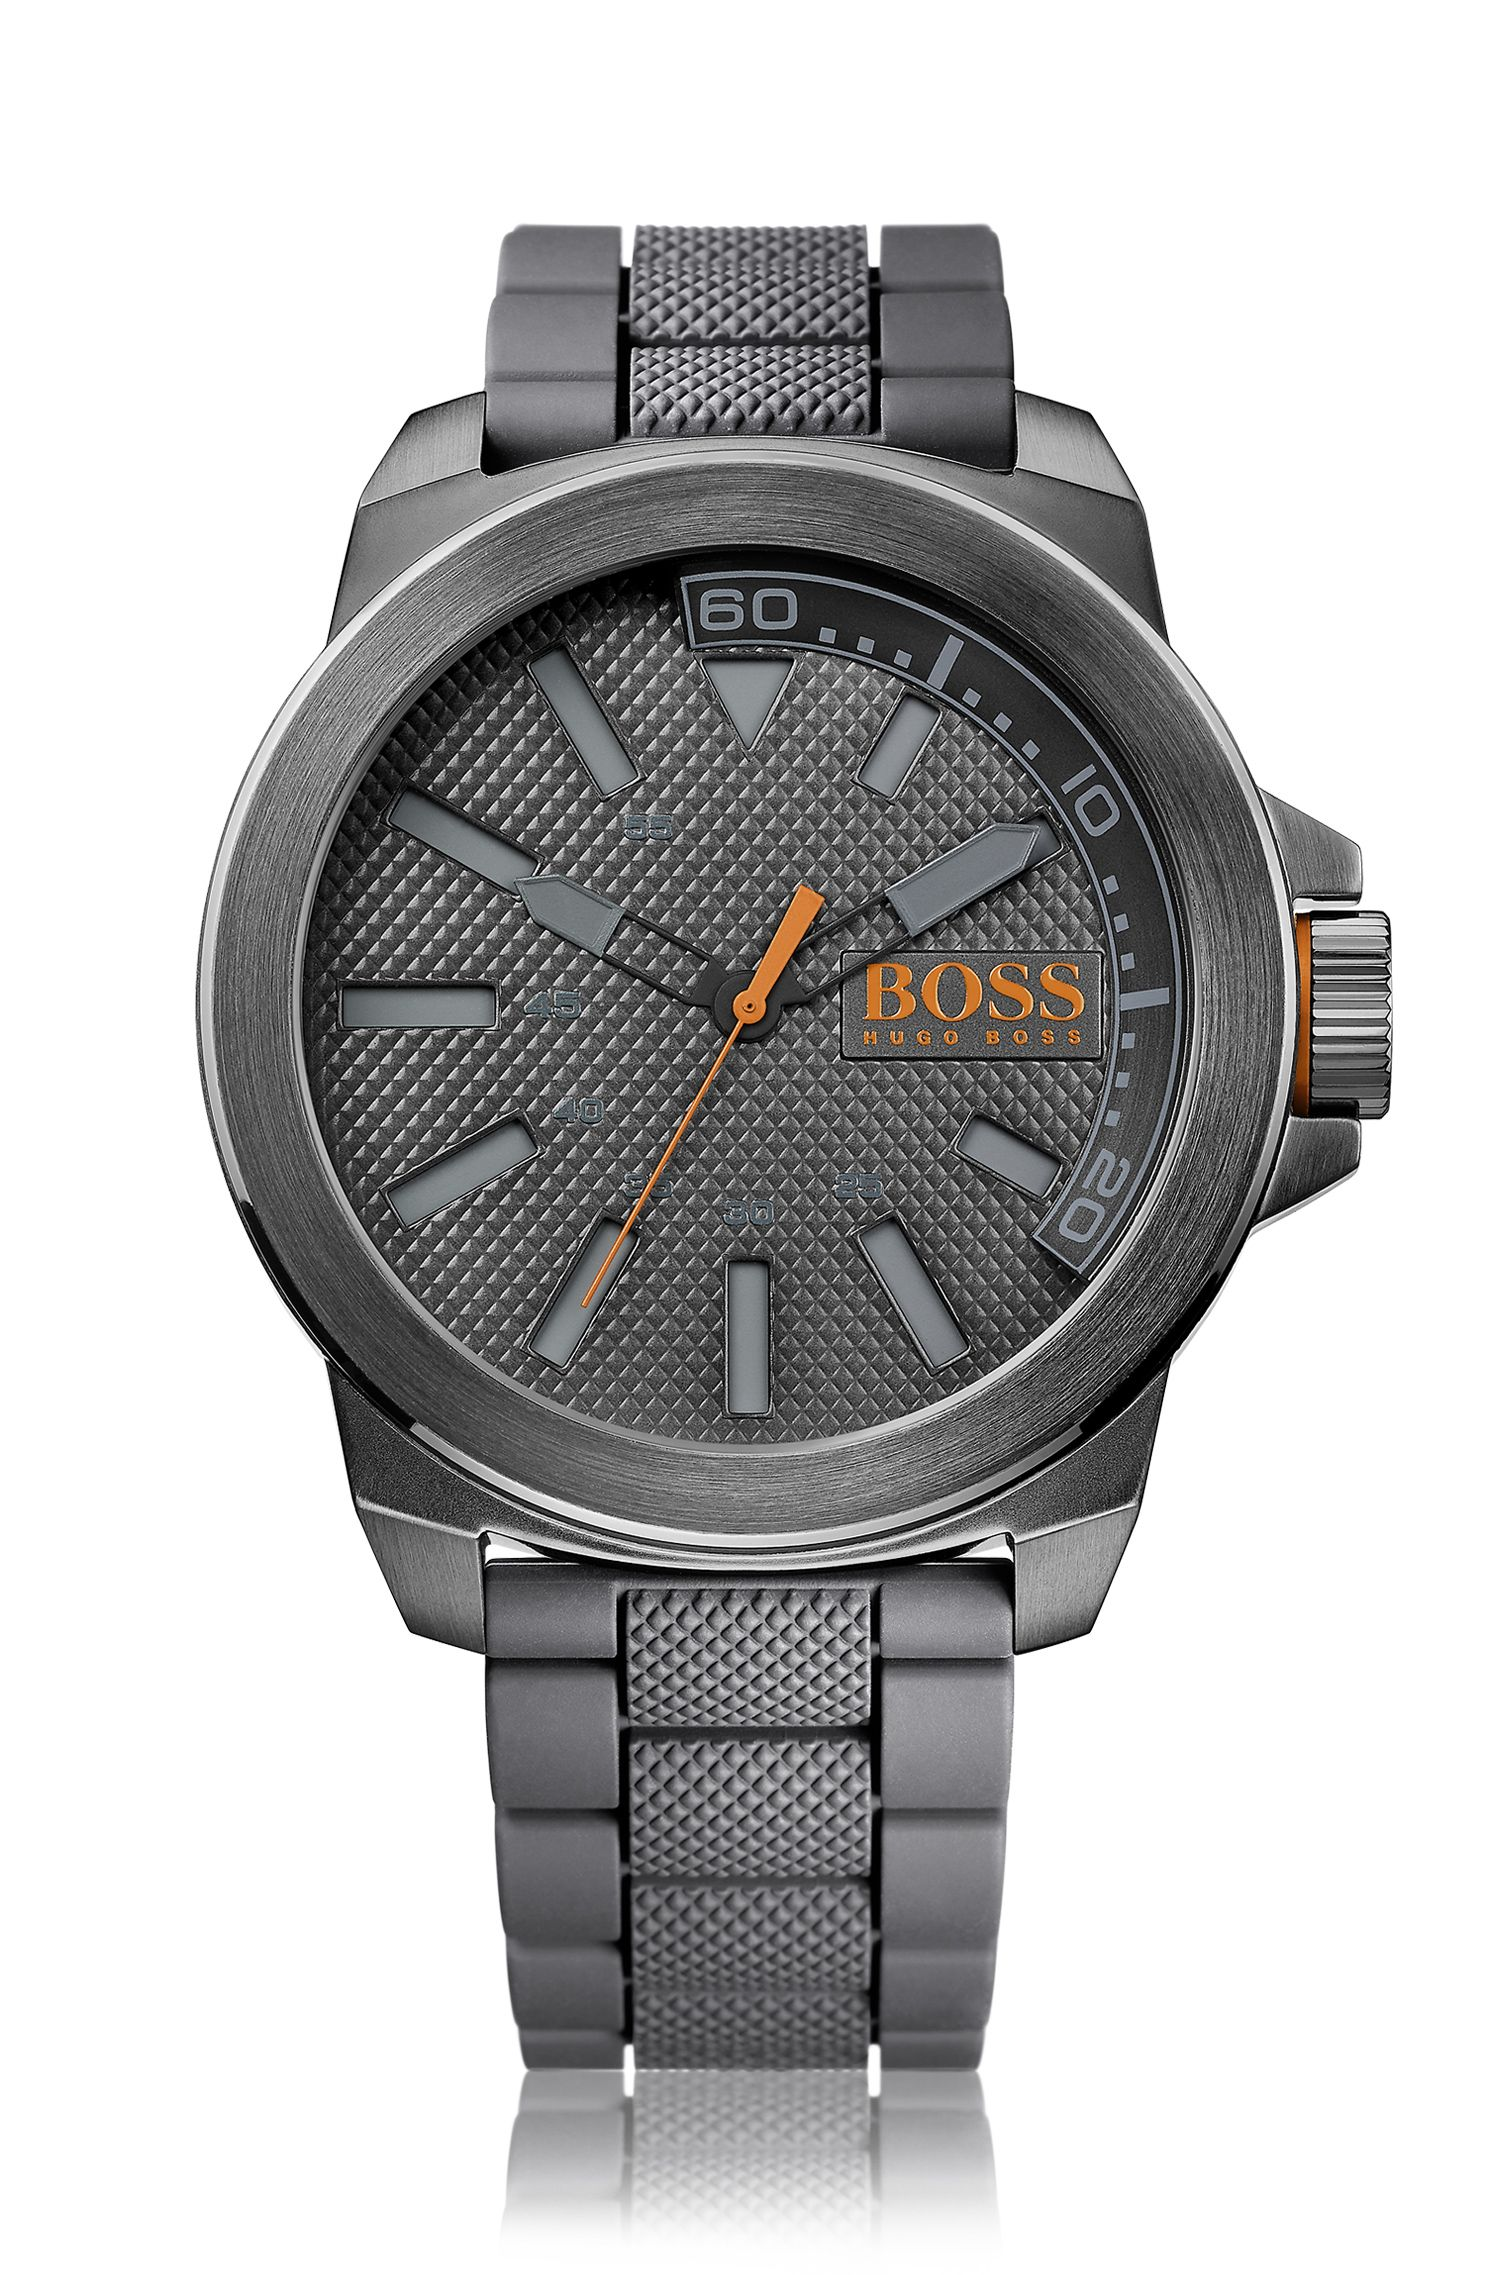 Dark-grey stainless-steel three-hand watch with textured dial and strap